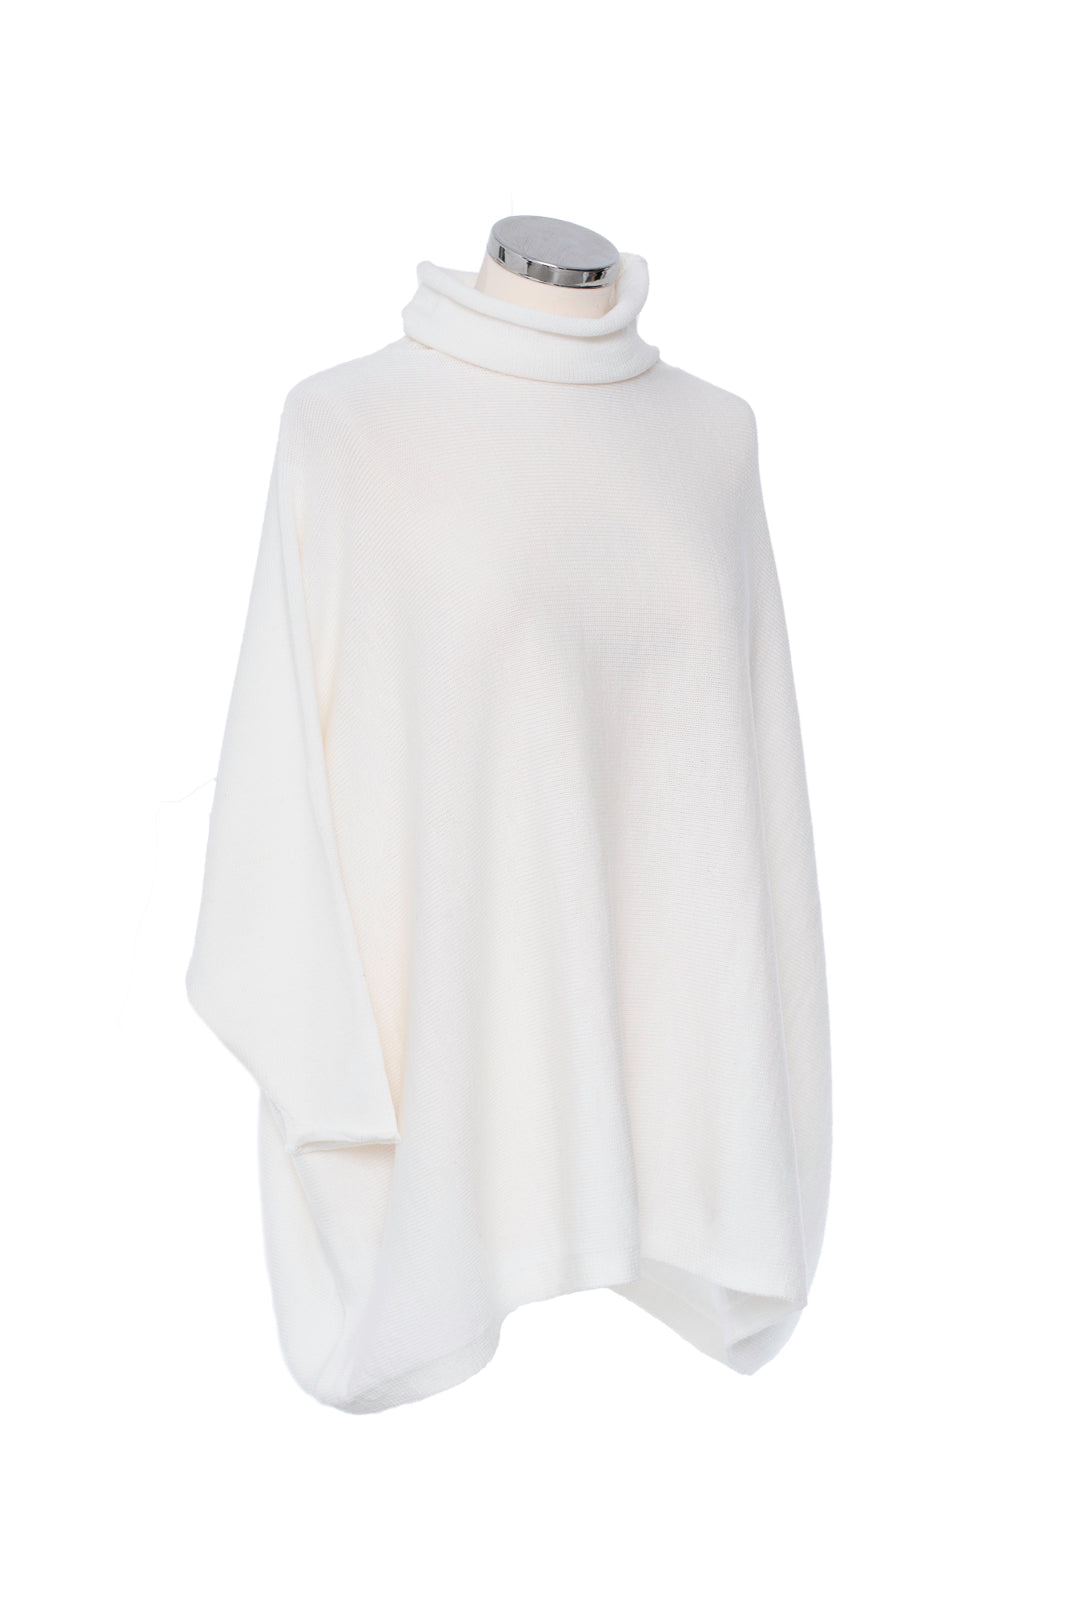 Winter White Soft Neck Tunic